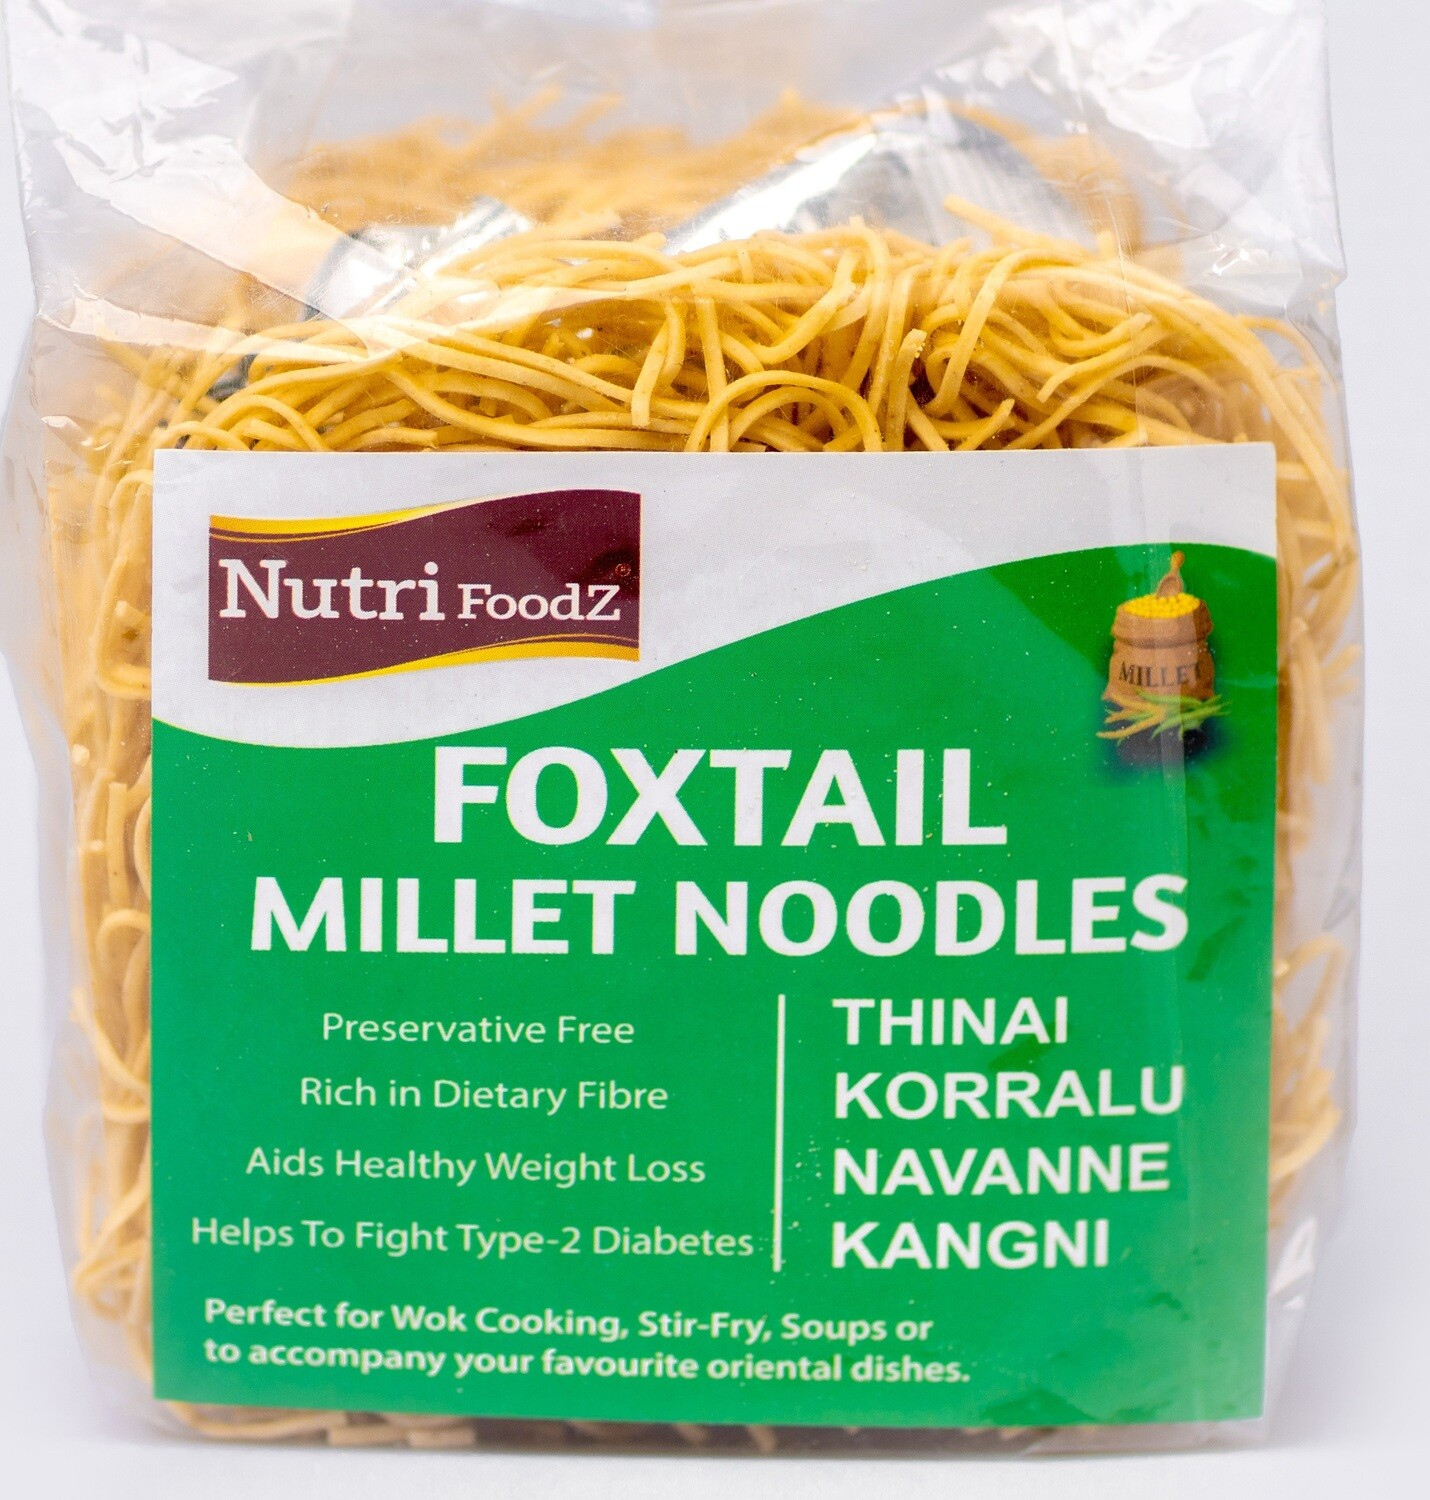 NUTRI FOODZ FOXTAIL MILLET NOODLES (Includes Taste Maker packet) 180 GMS